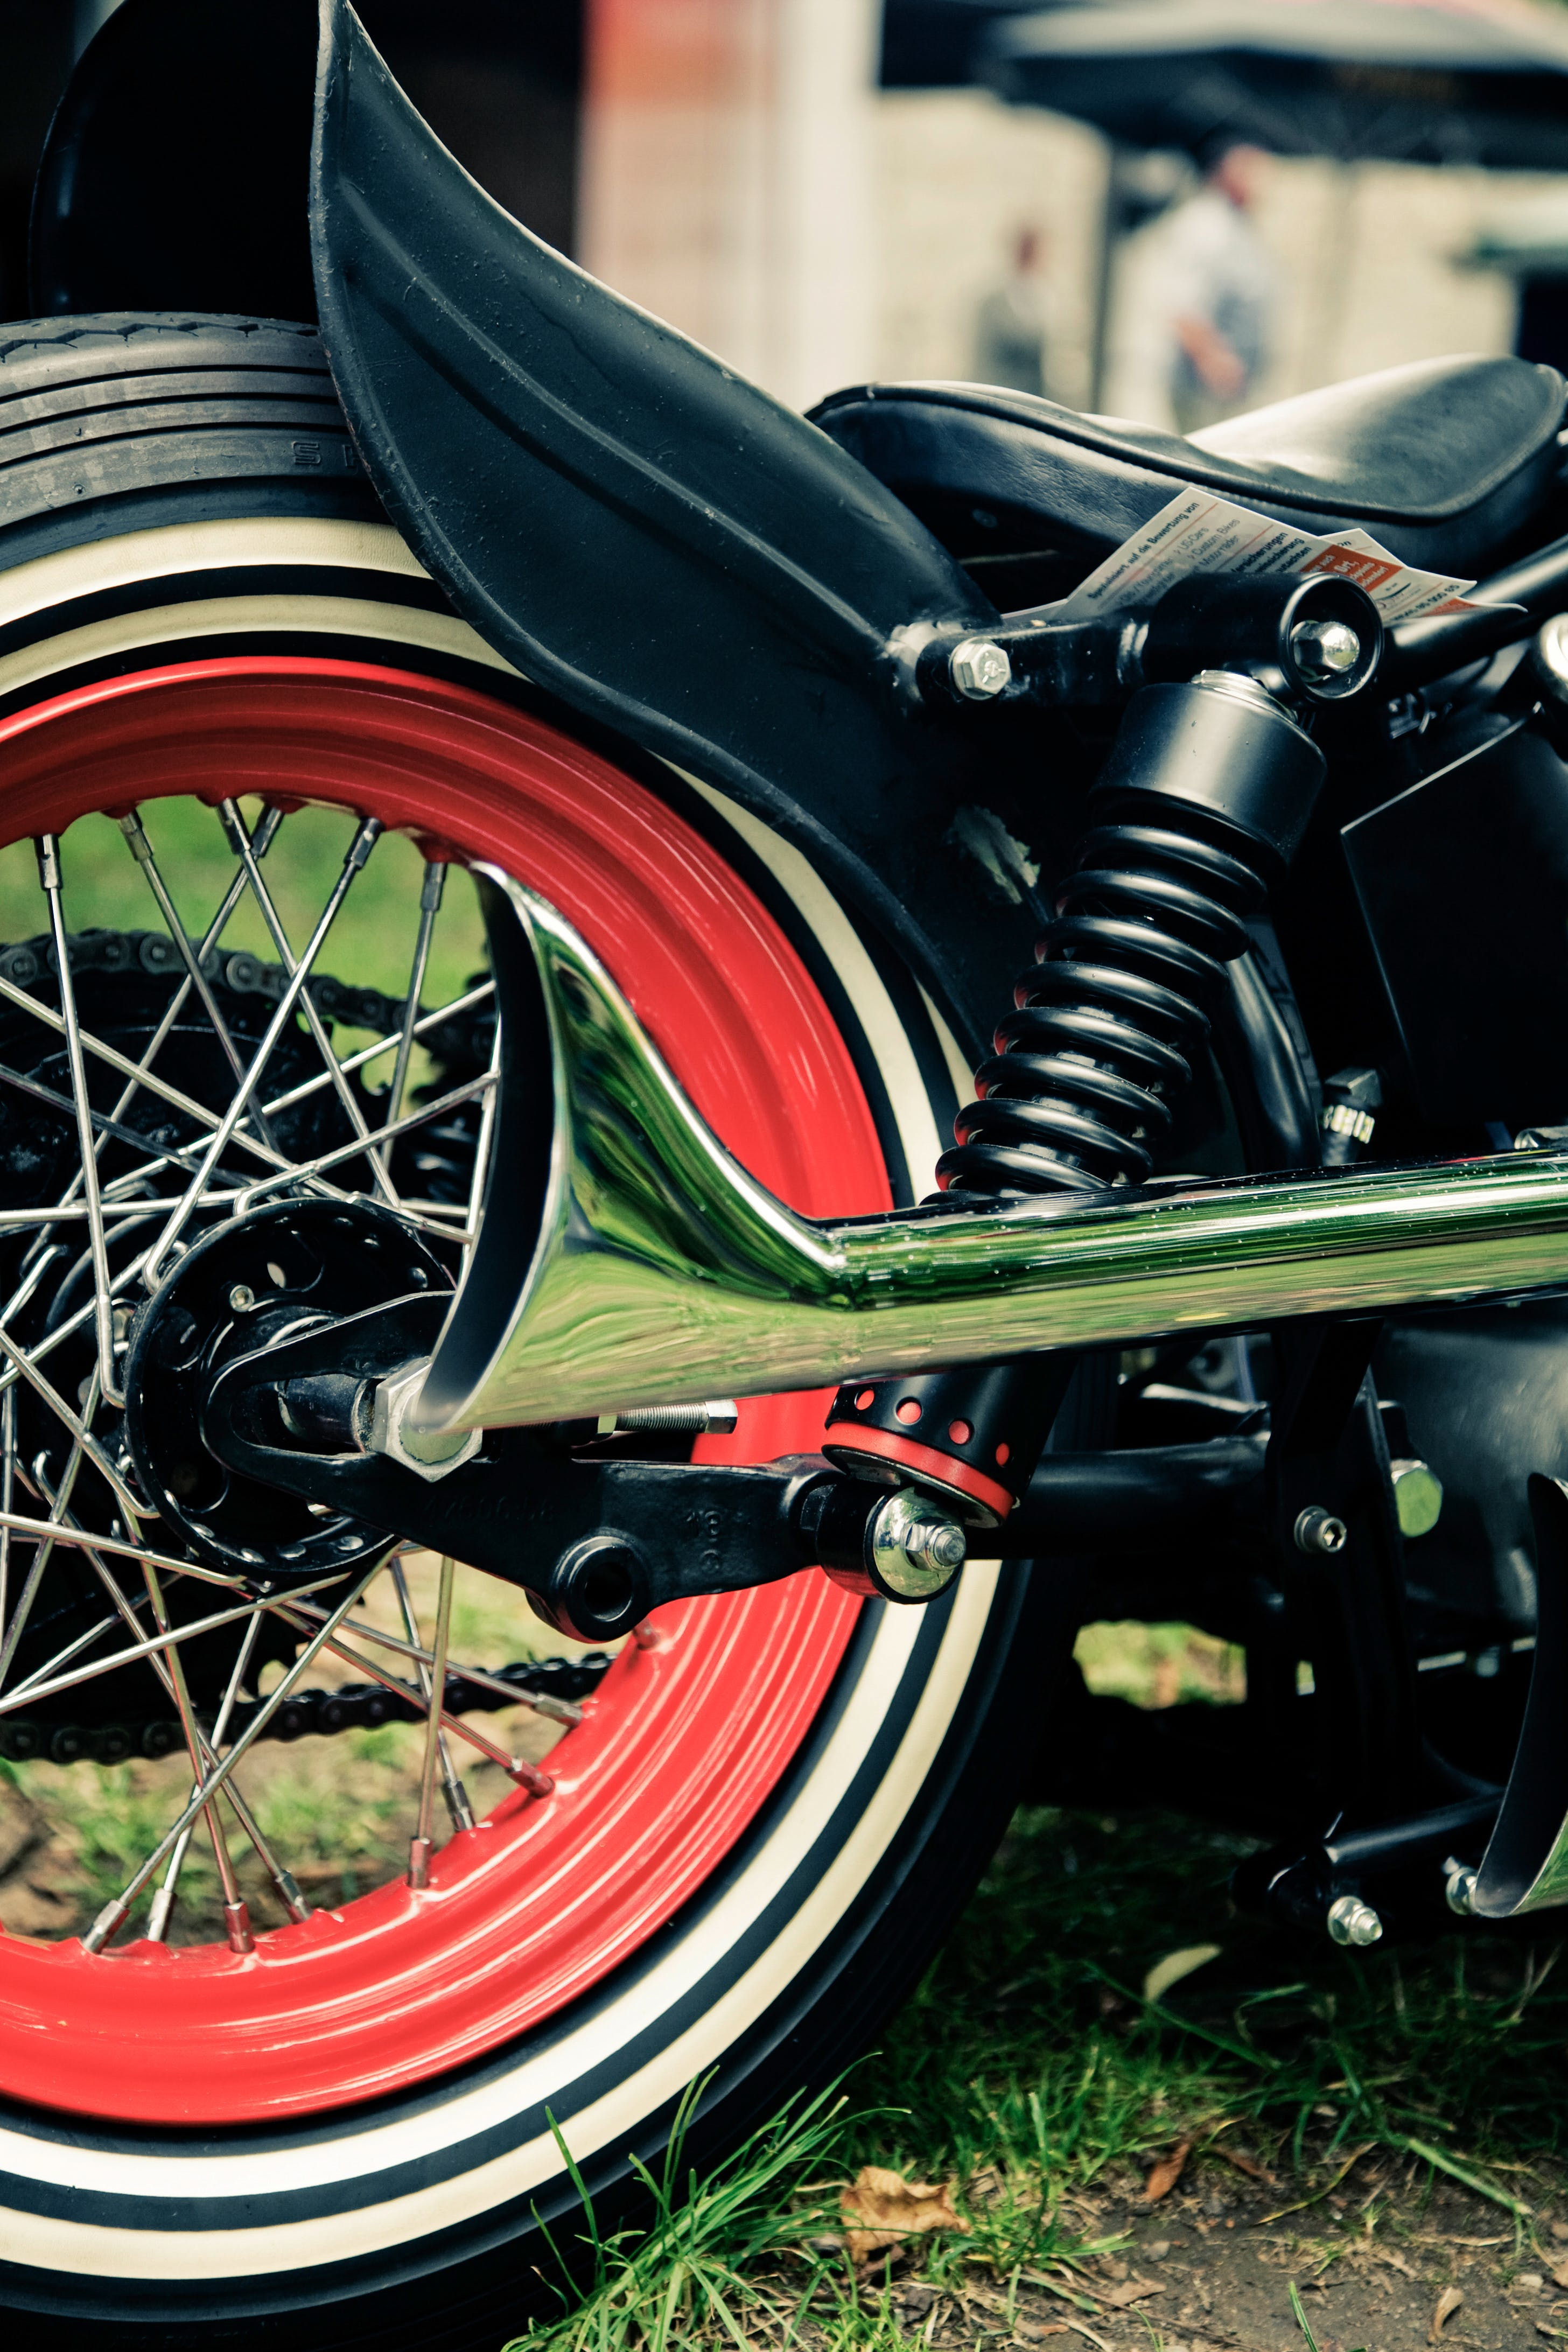 Silver Motorcycle Exhaust Pipe Near Black Fender during Daytime